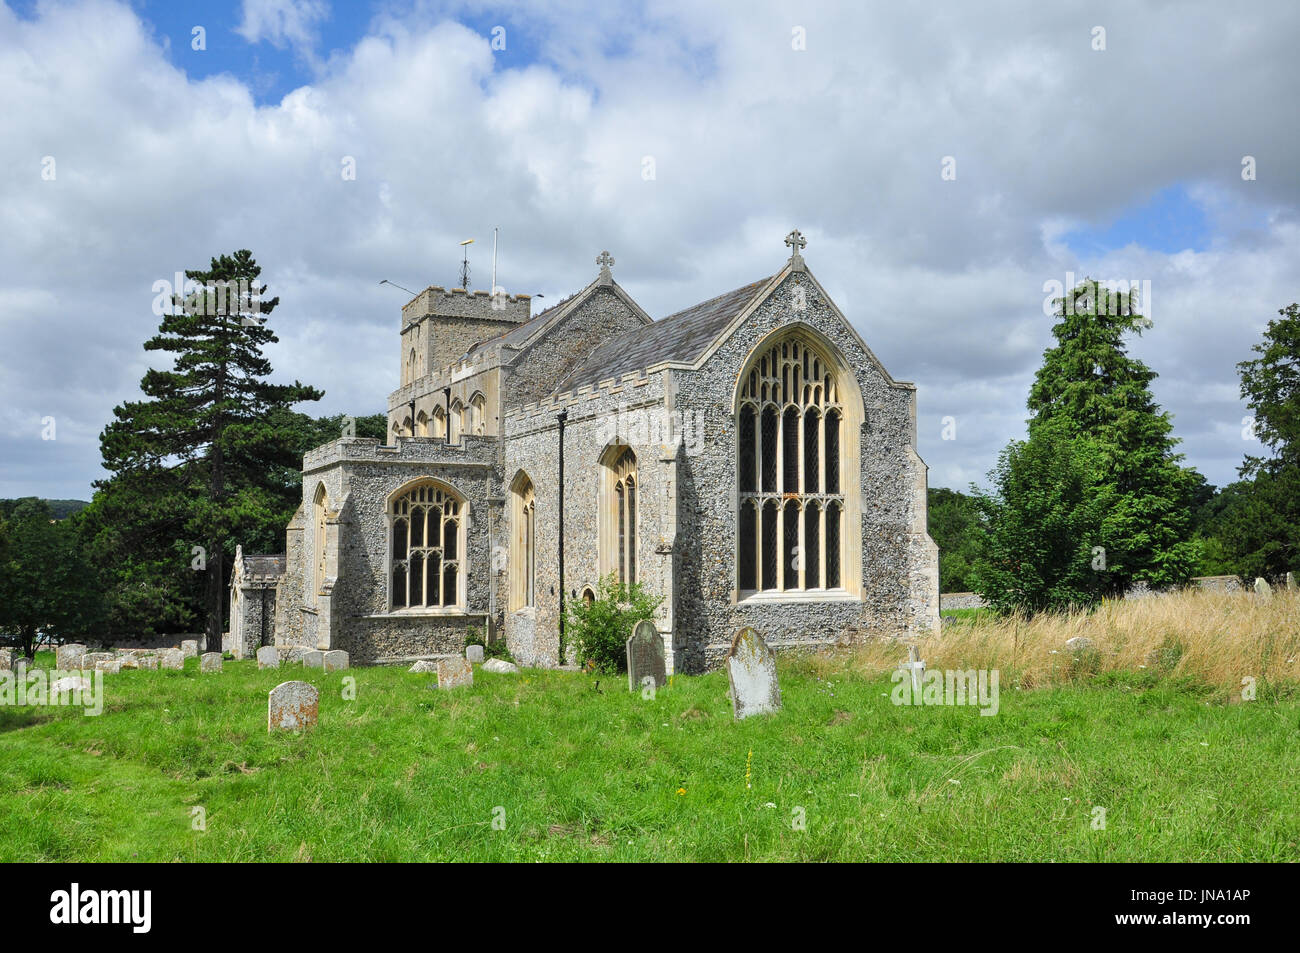 St Peter's Church in the village of Moulton, Suffolk, England, UK - Stock Image